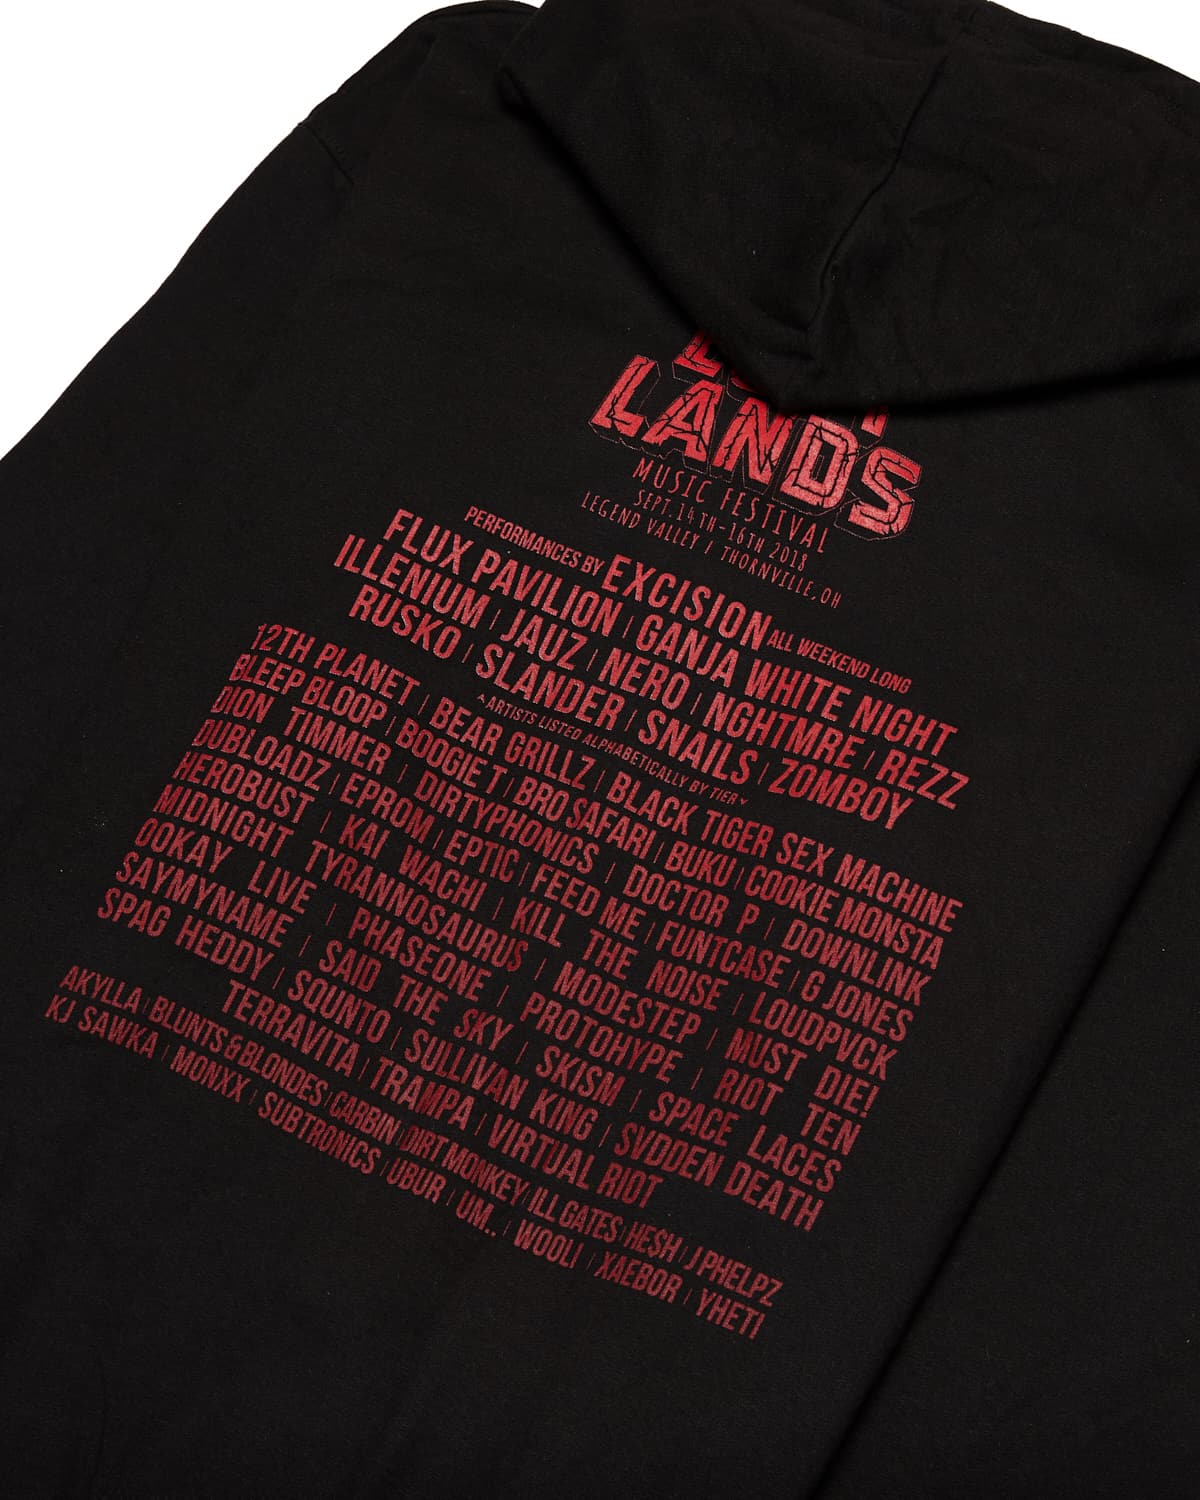 Lost Lands 2018 Lineup Full-Zip Hoodie - Black/Red